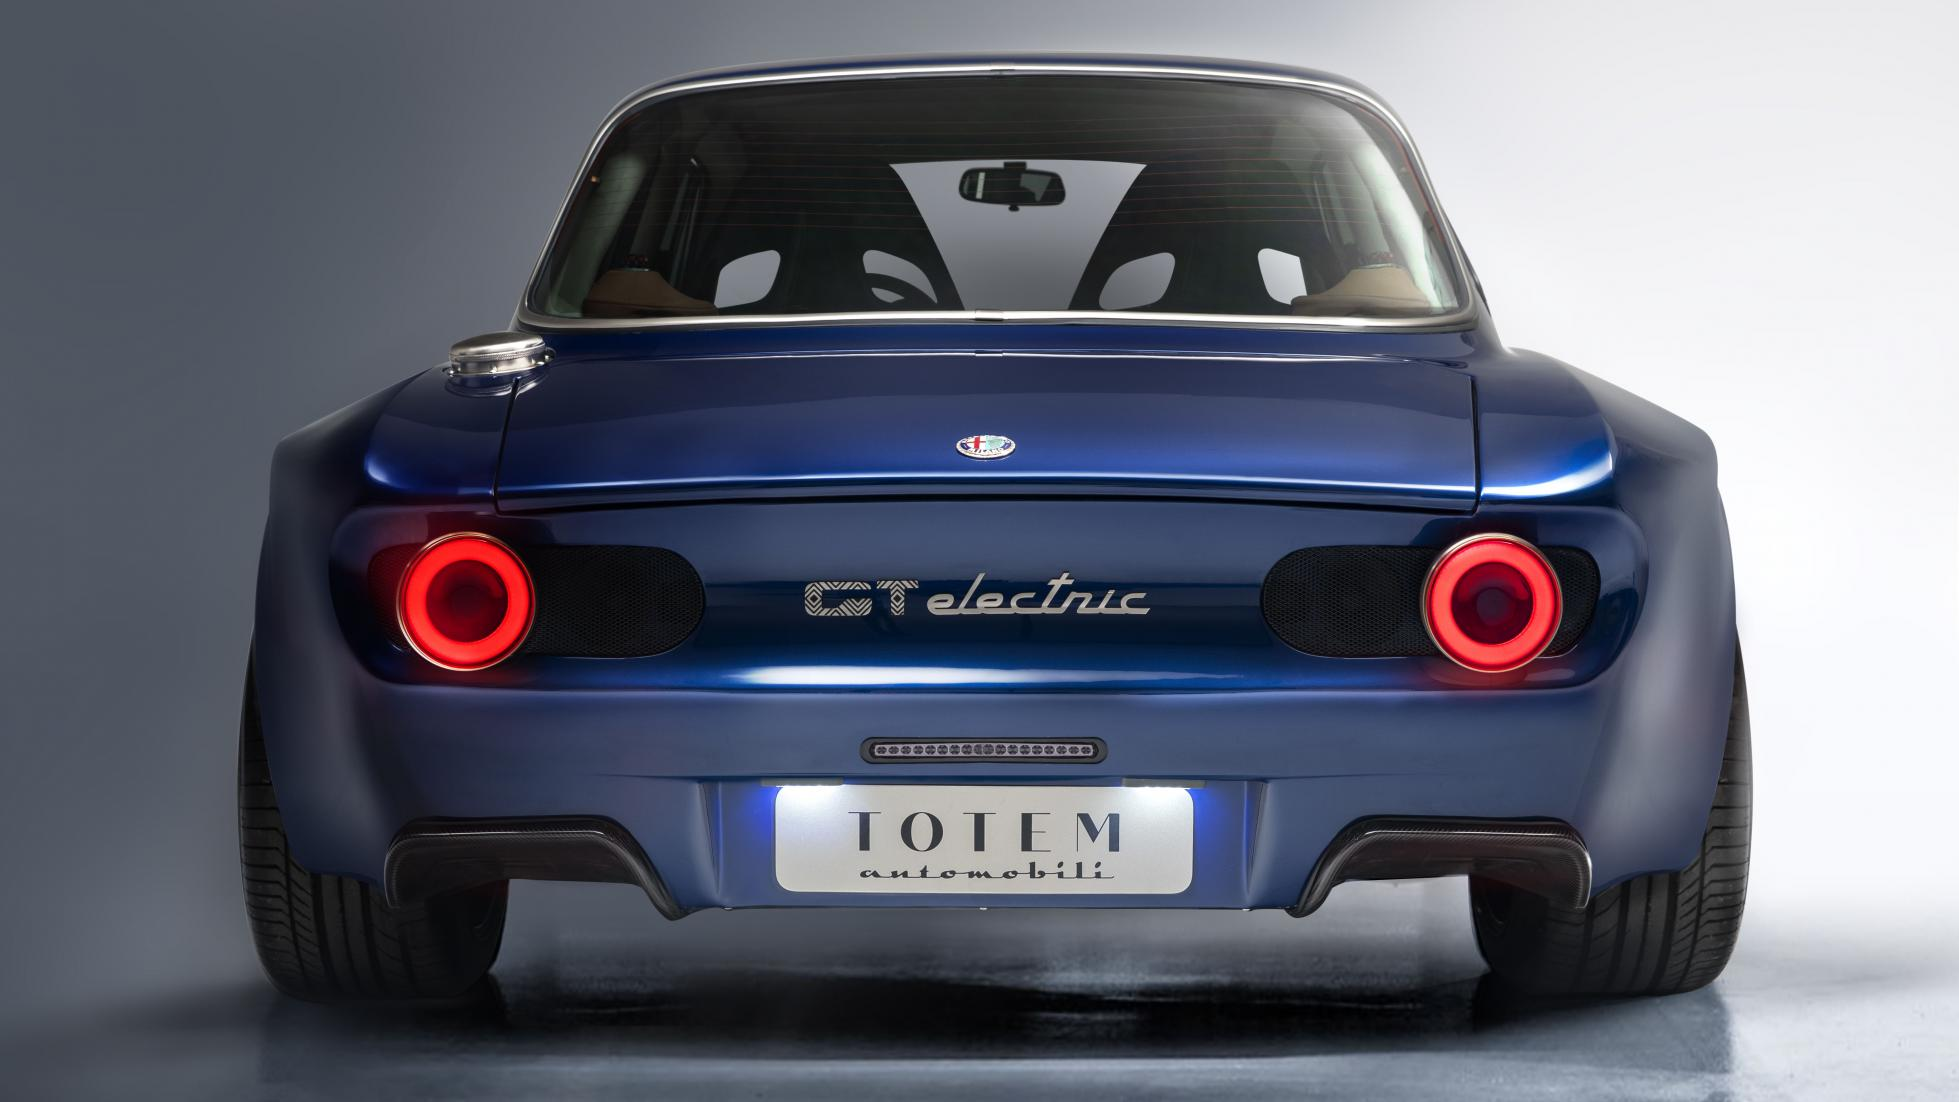 Alfa-Romeo-Giulia-GT-Electric-by-Totem-Automobili-22